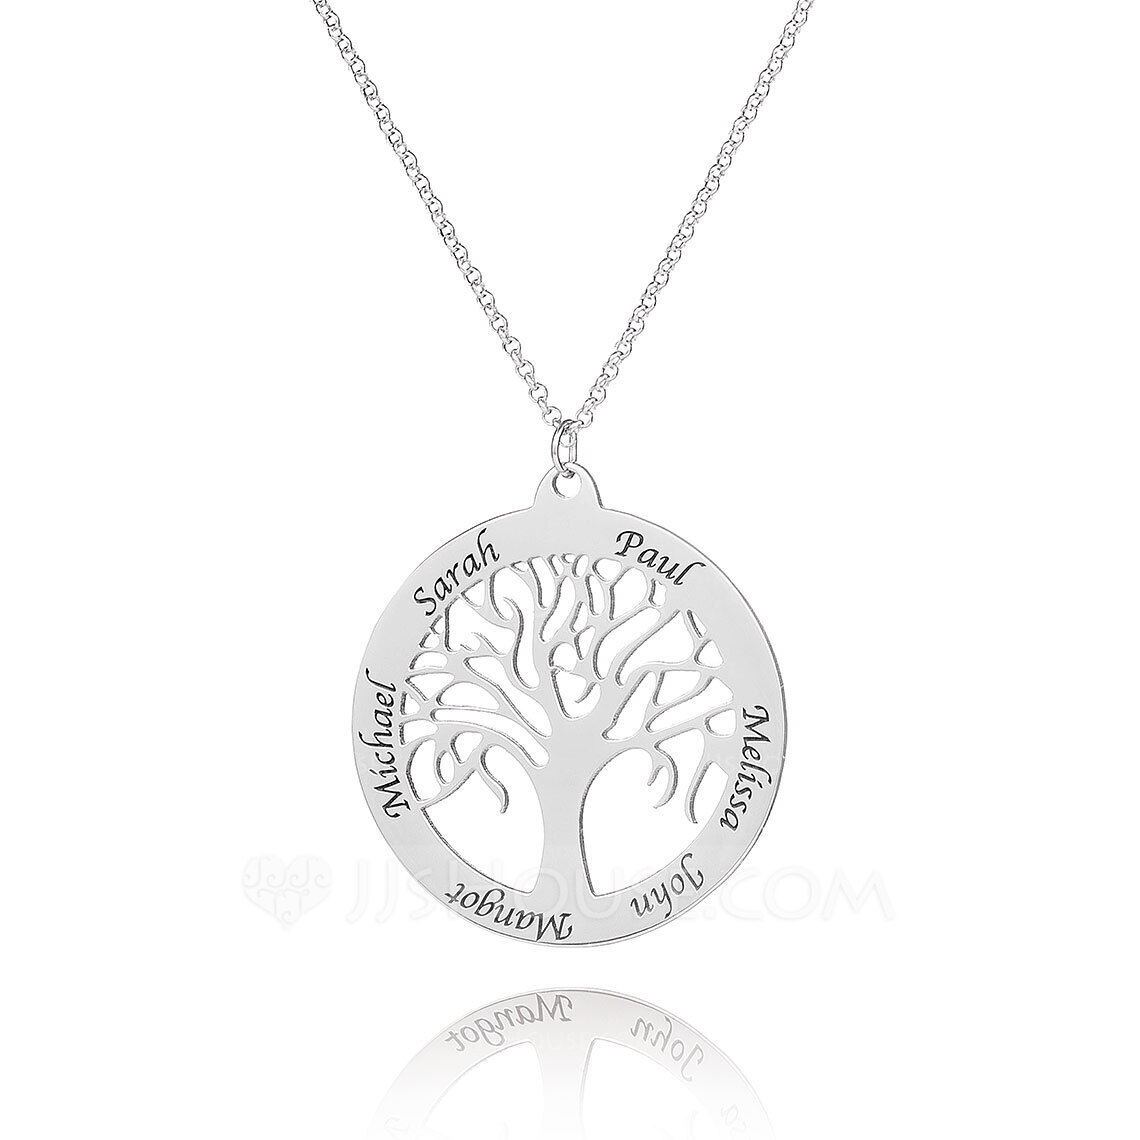 Custom Sterling Silver Engraving/Engraved Family Necklace Circle Necklace With Family Tree - Birthday Gifts Mother's Day Gifts